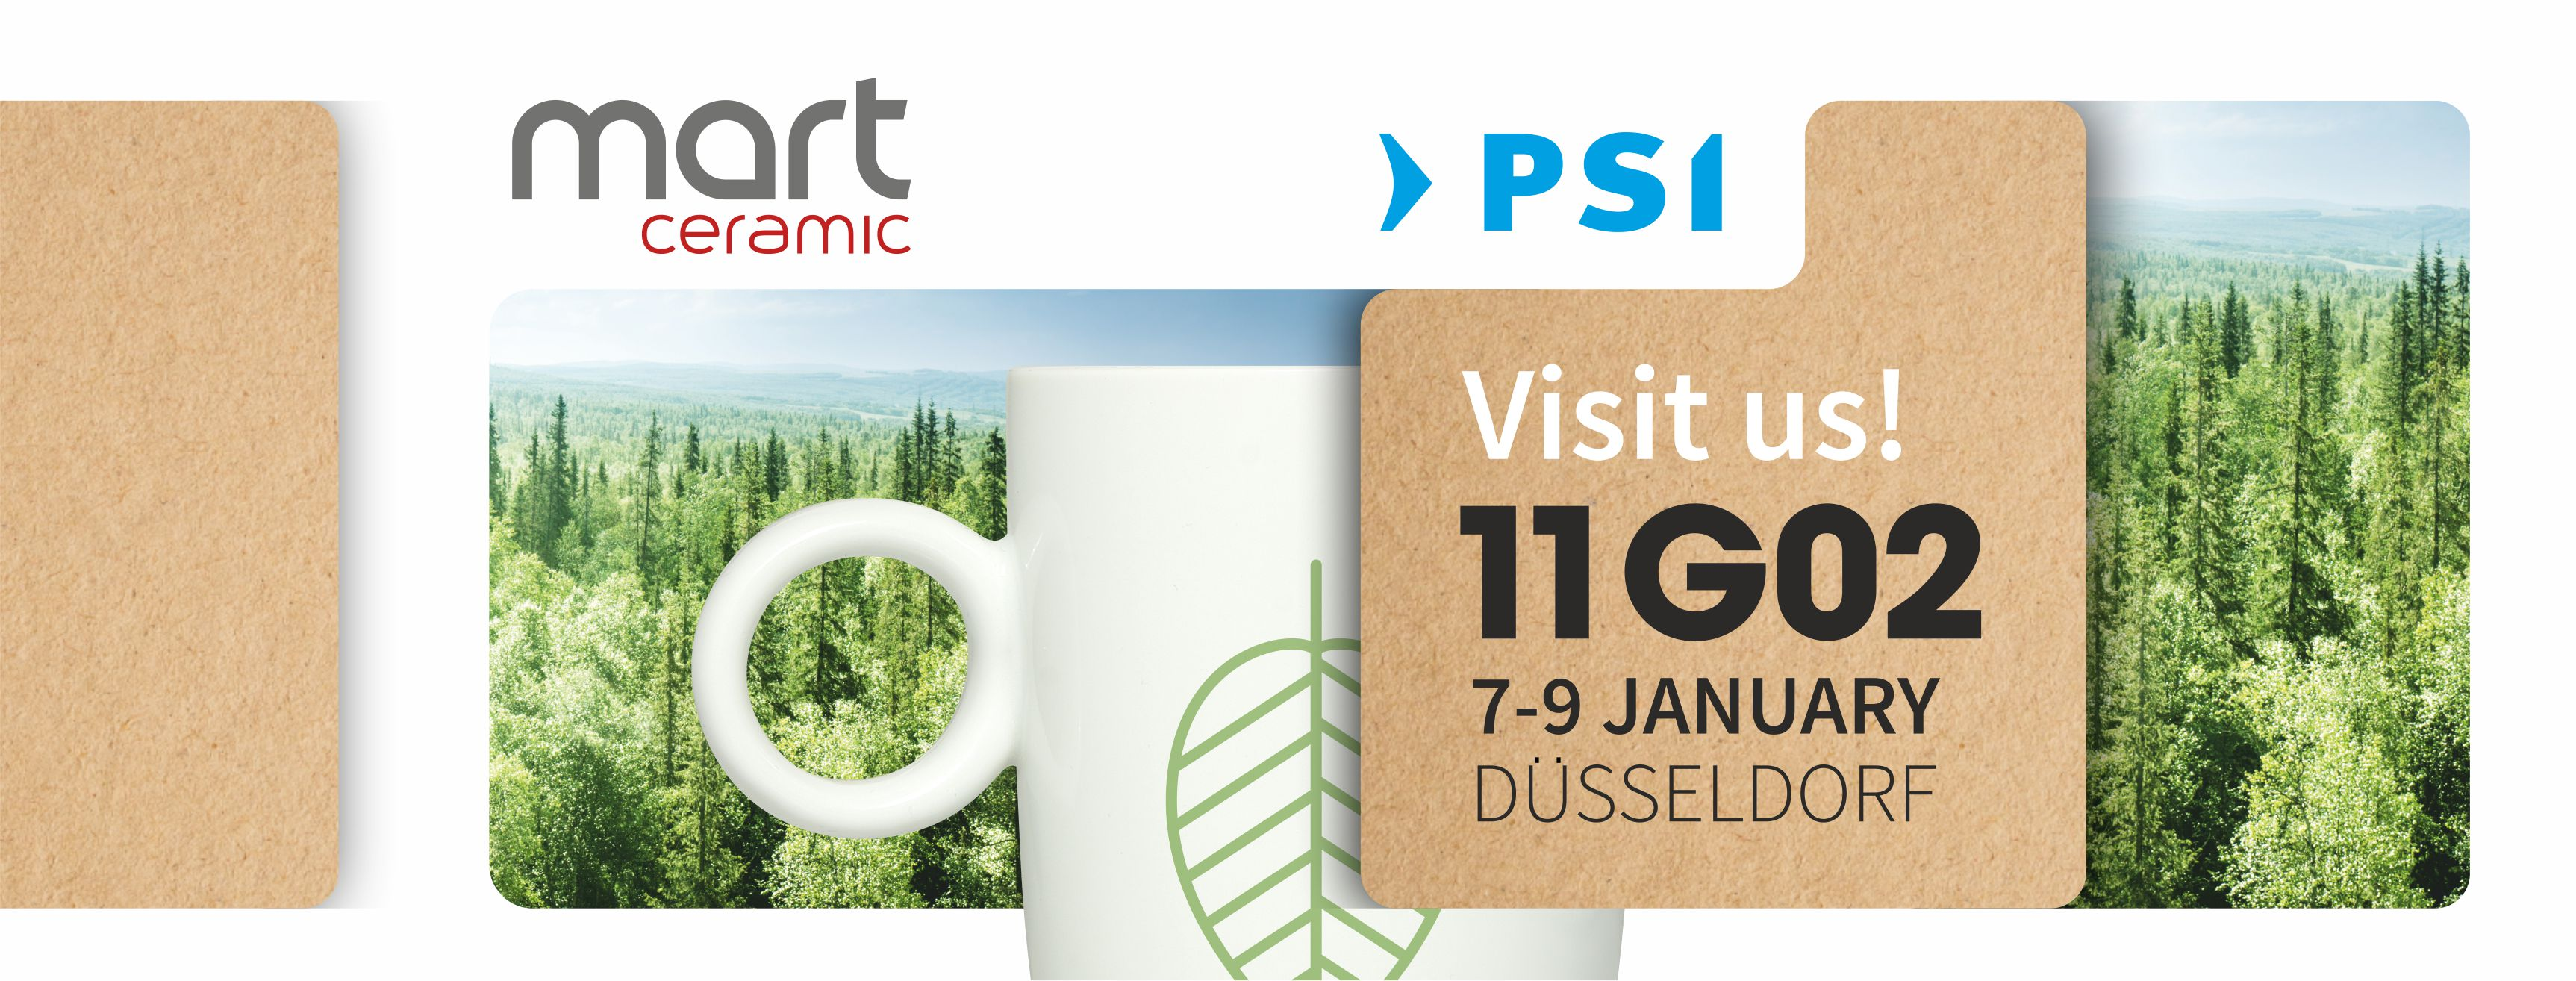 we would like to invite you to visit our stand at PSI 2020